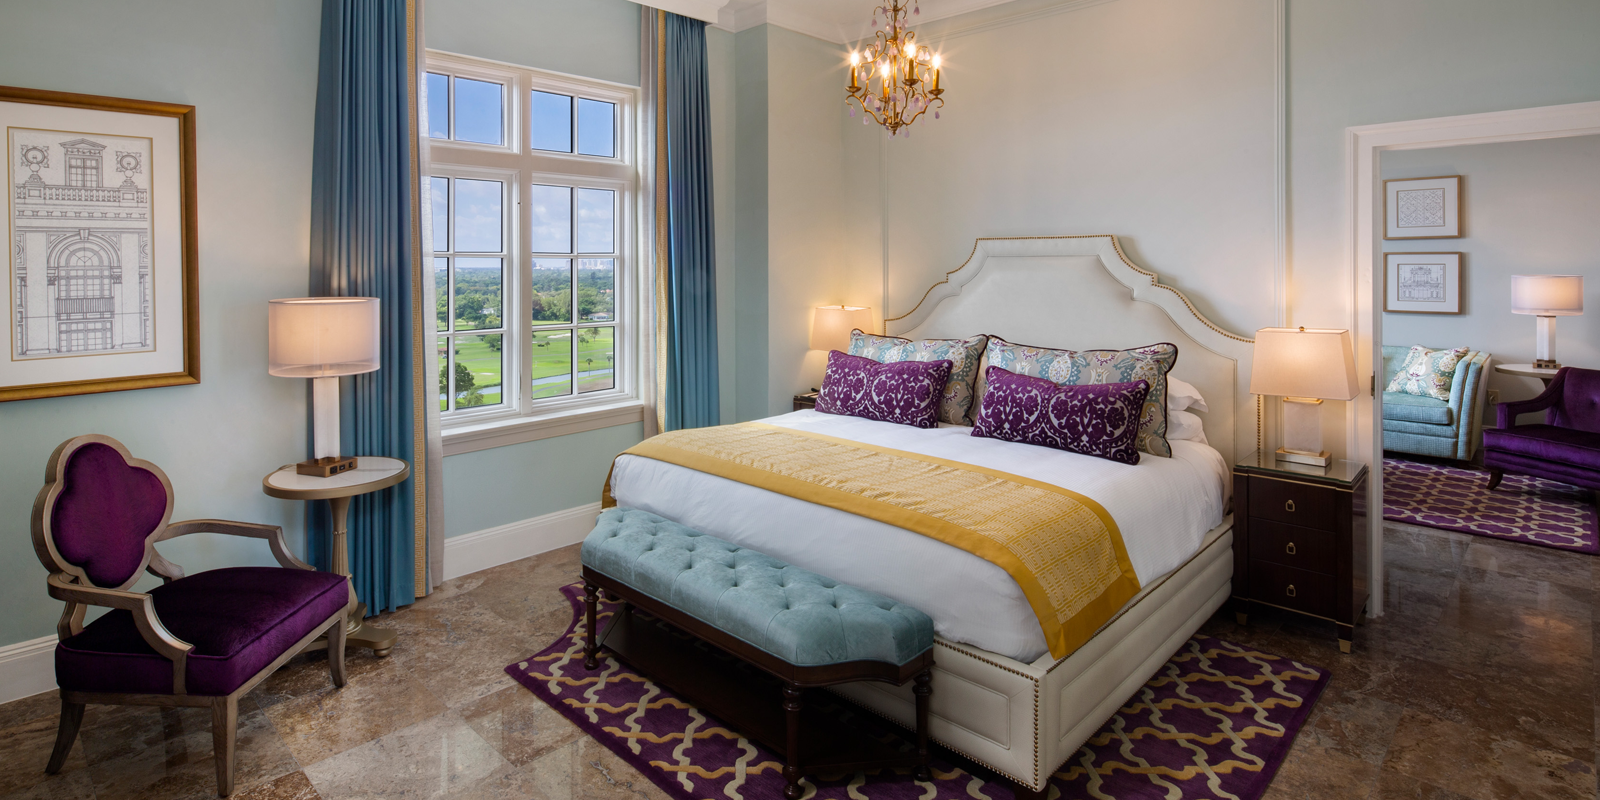 Stay in a Biltmore suite for your special wedding day